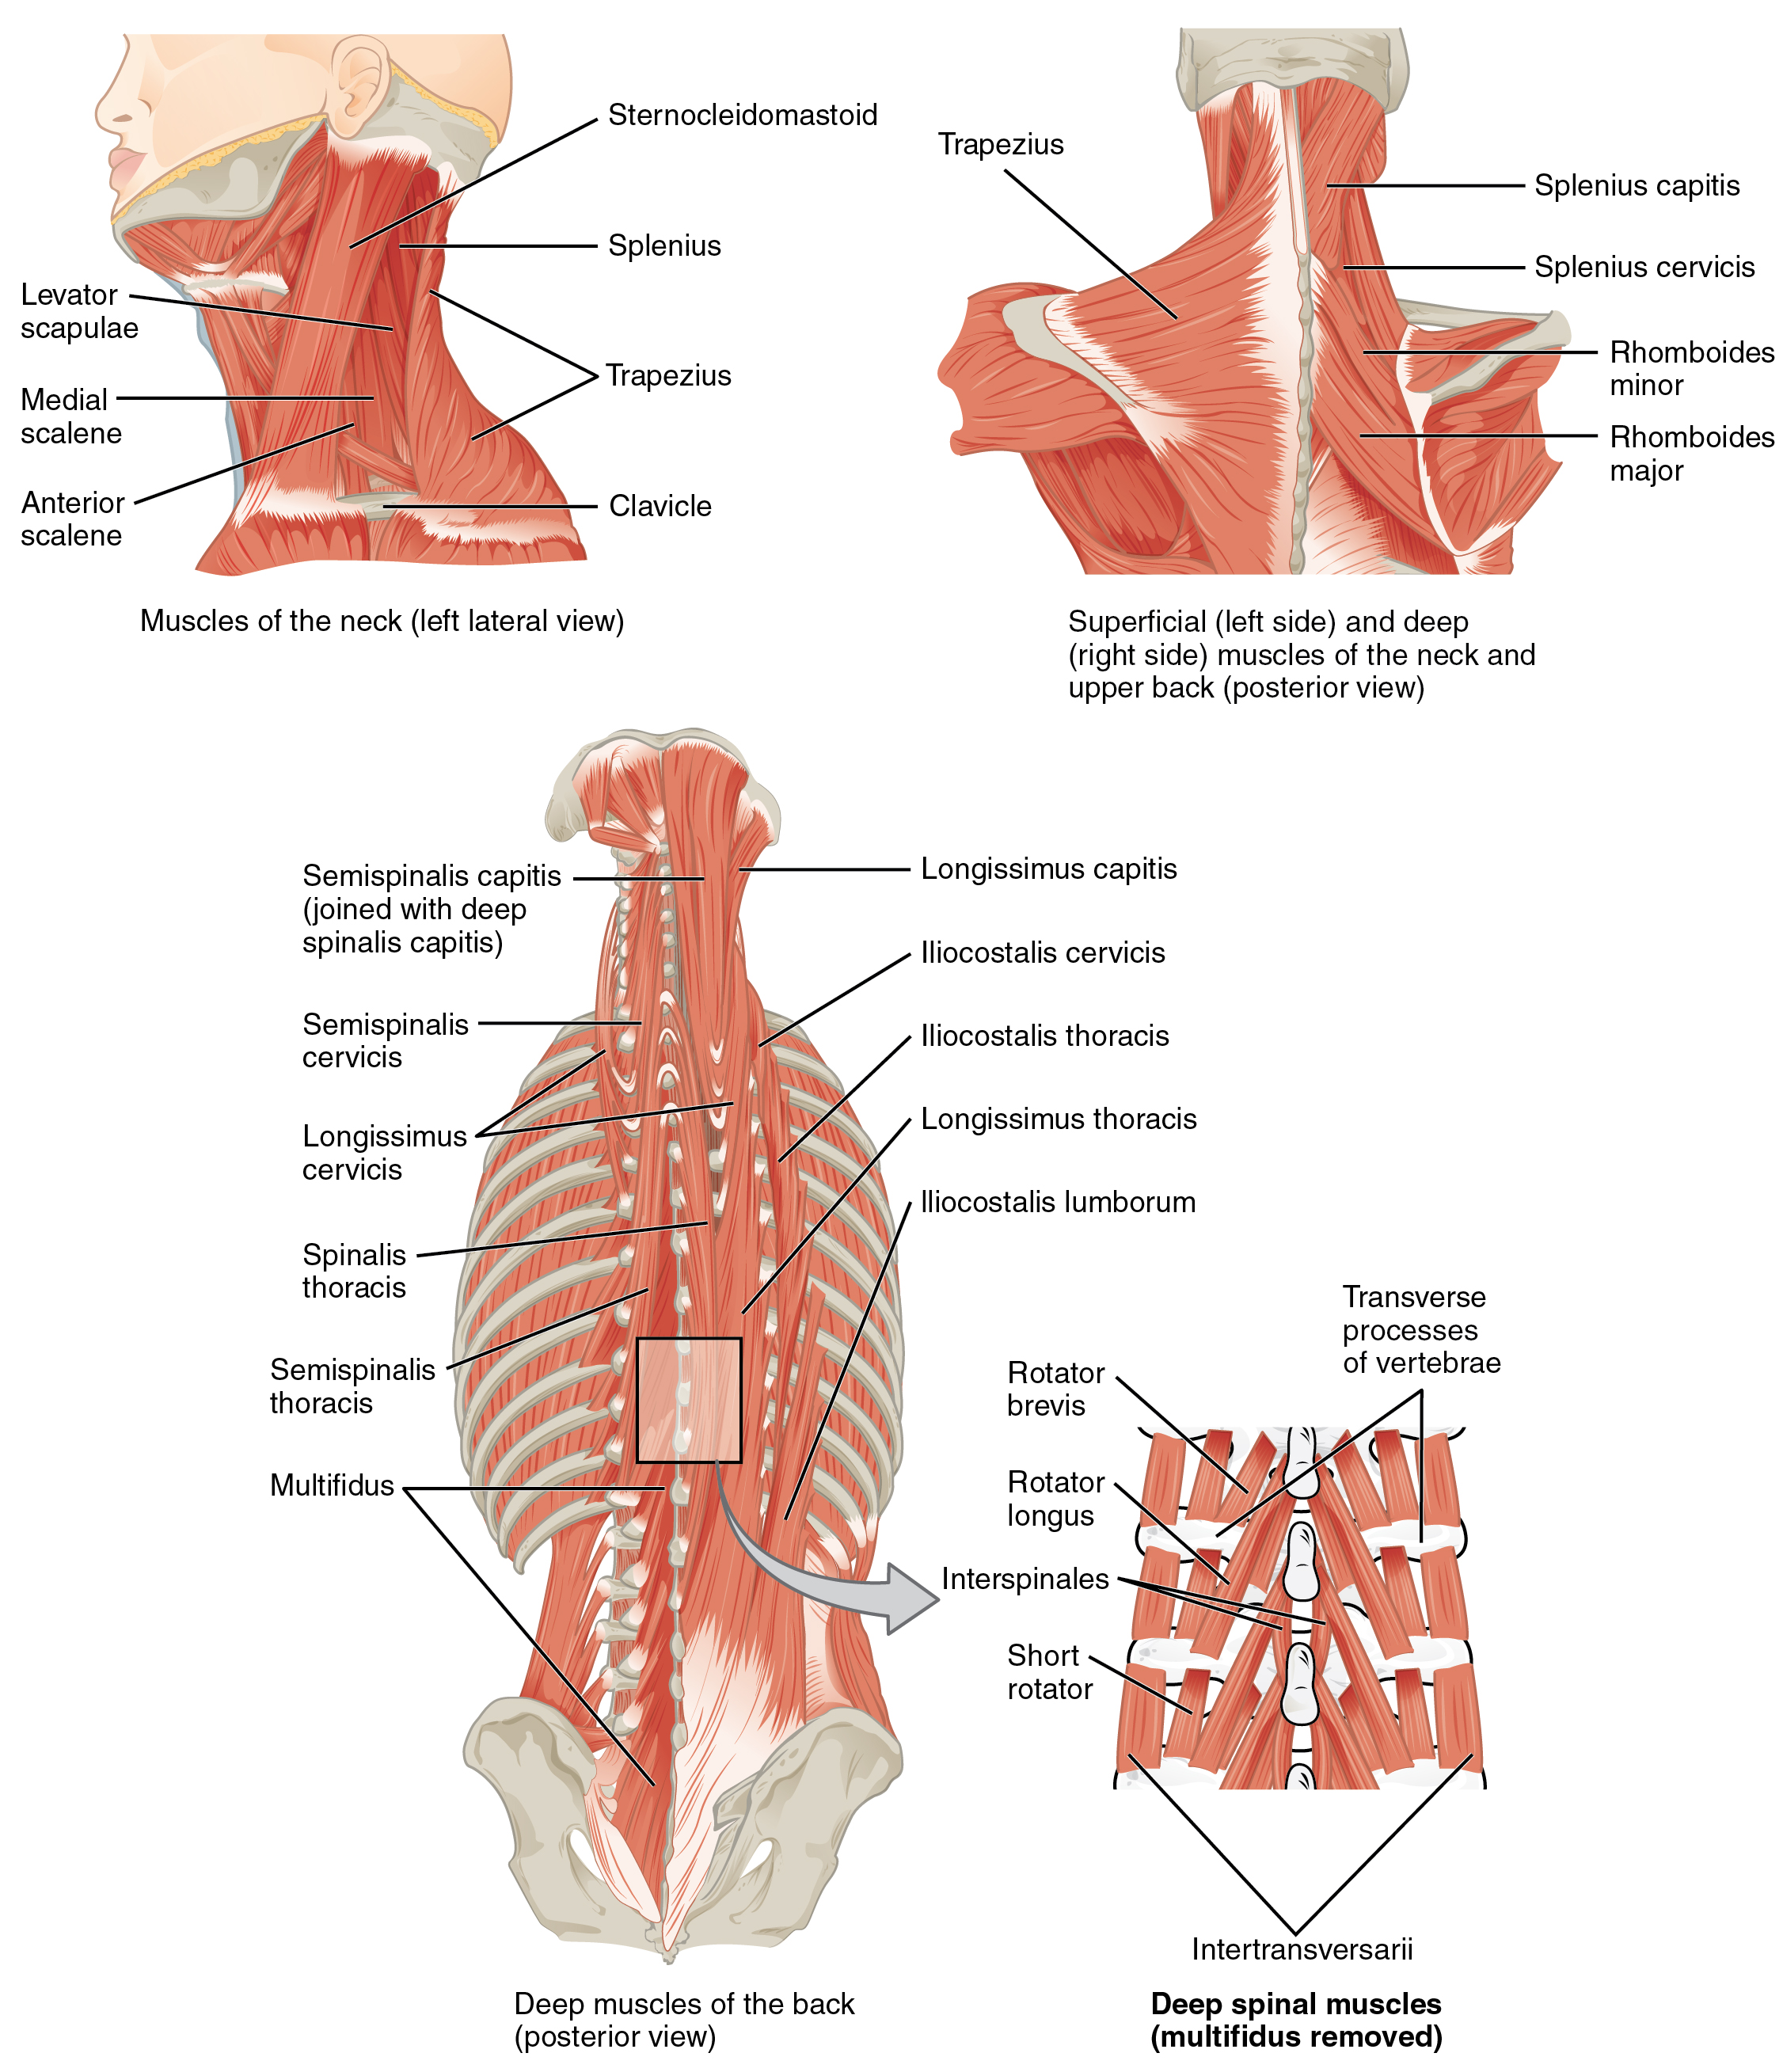 113 Axial Muscles Of The Head Neck And Back Anatomy Physiology Three Phase High Leg Wiring Diagram Top Left Panel Shows A Lateral View